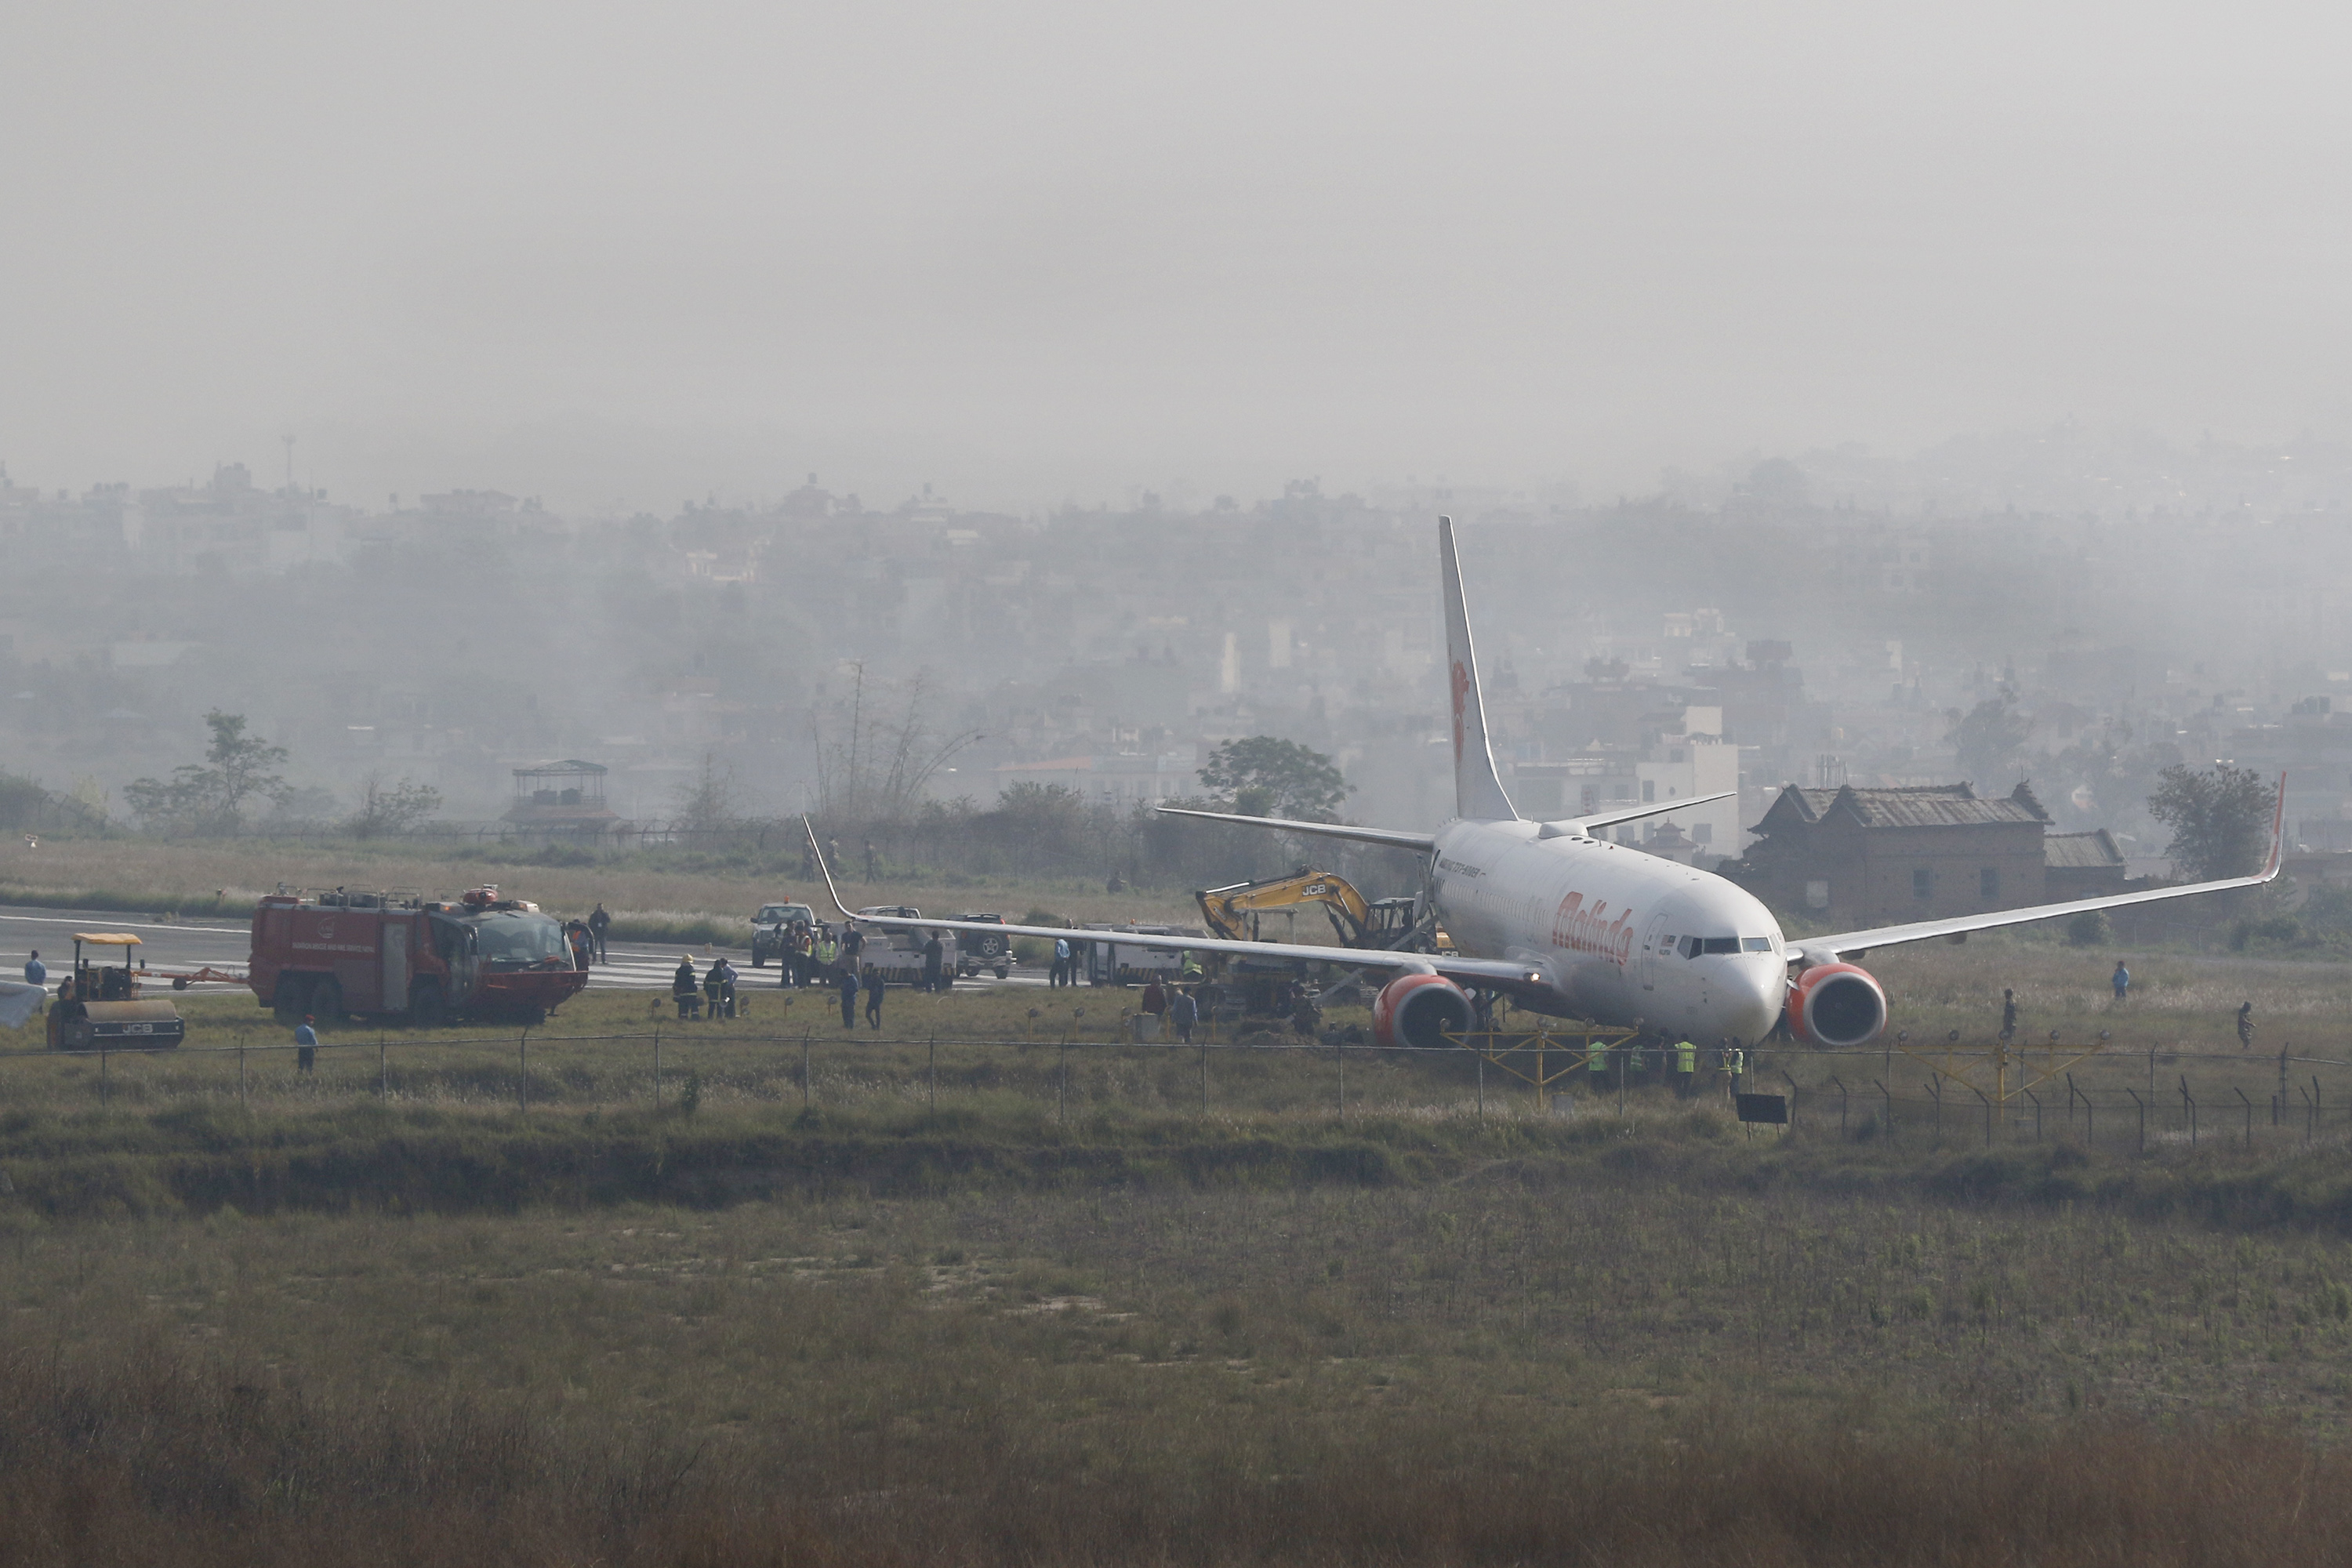 Malindo Airlines plane skids off runway in Nepal